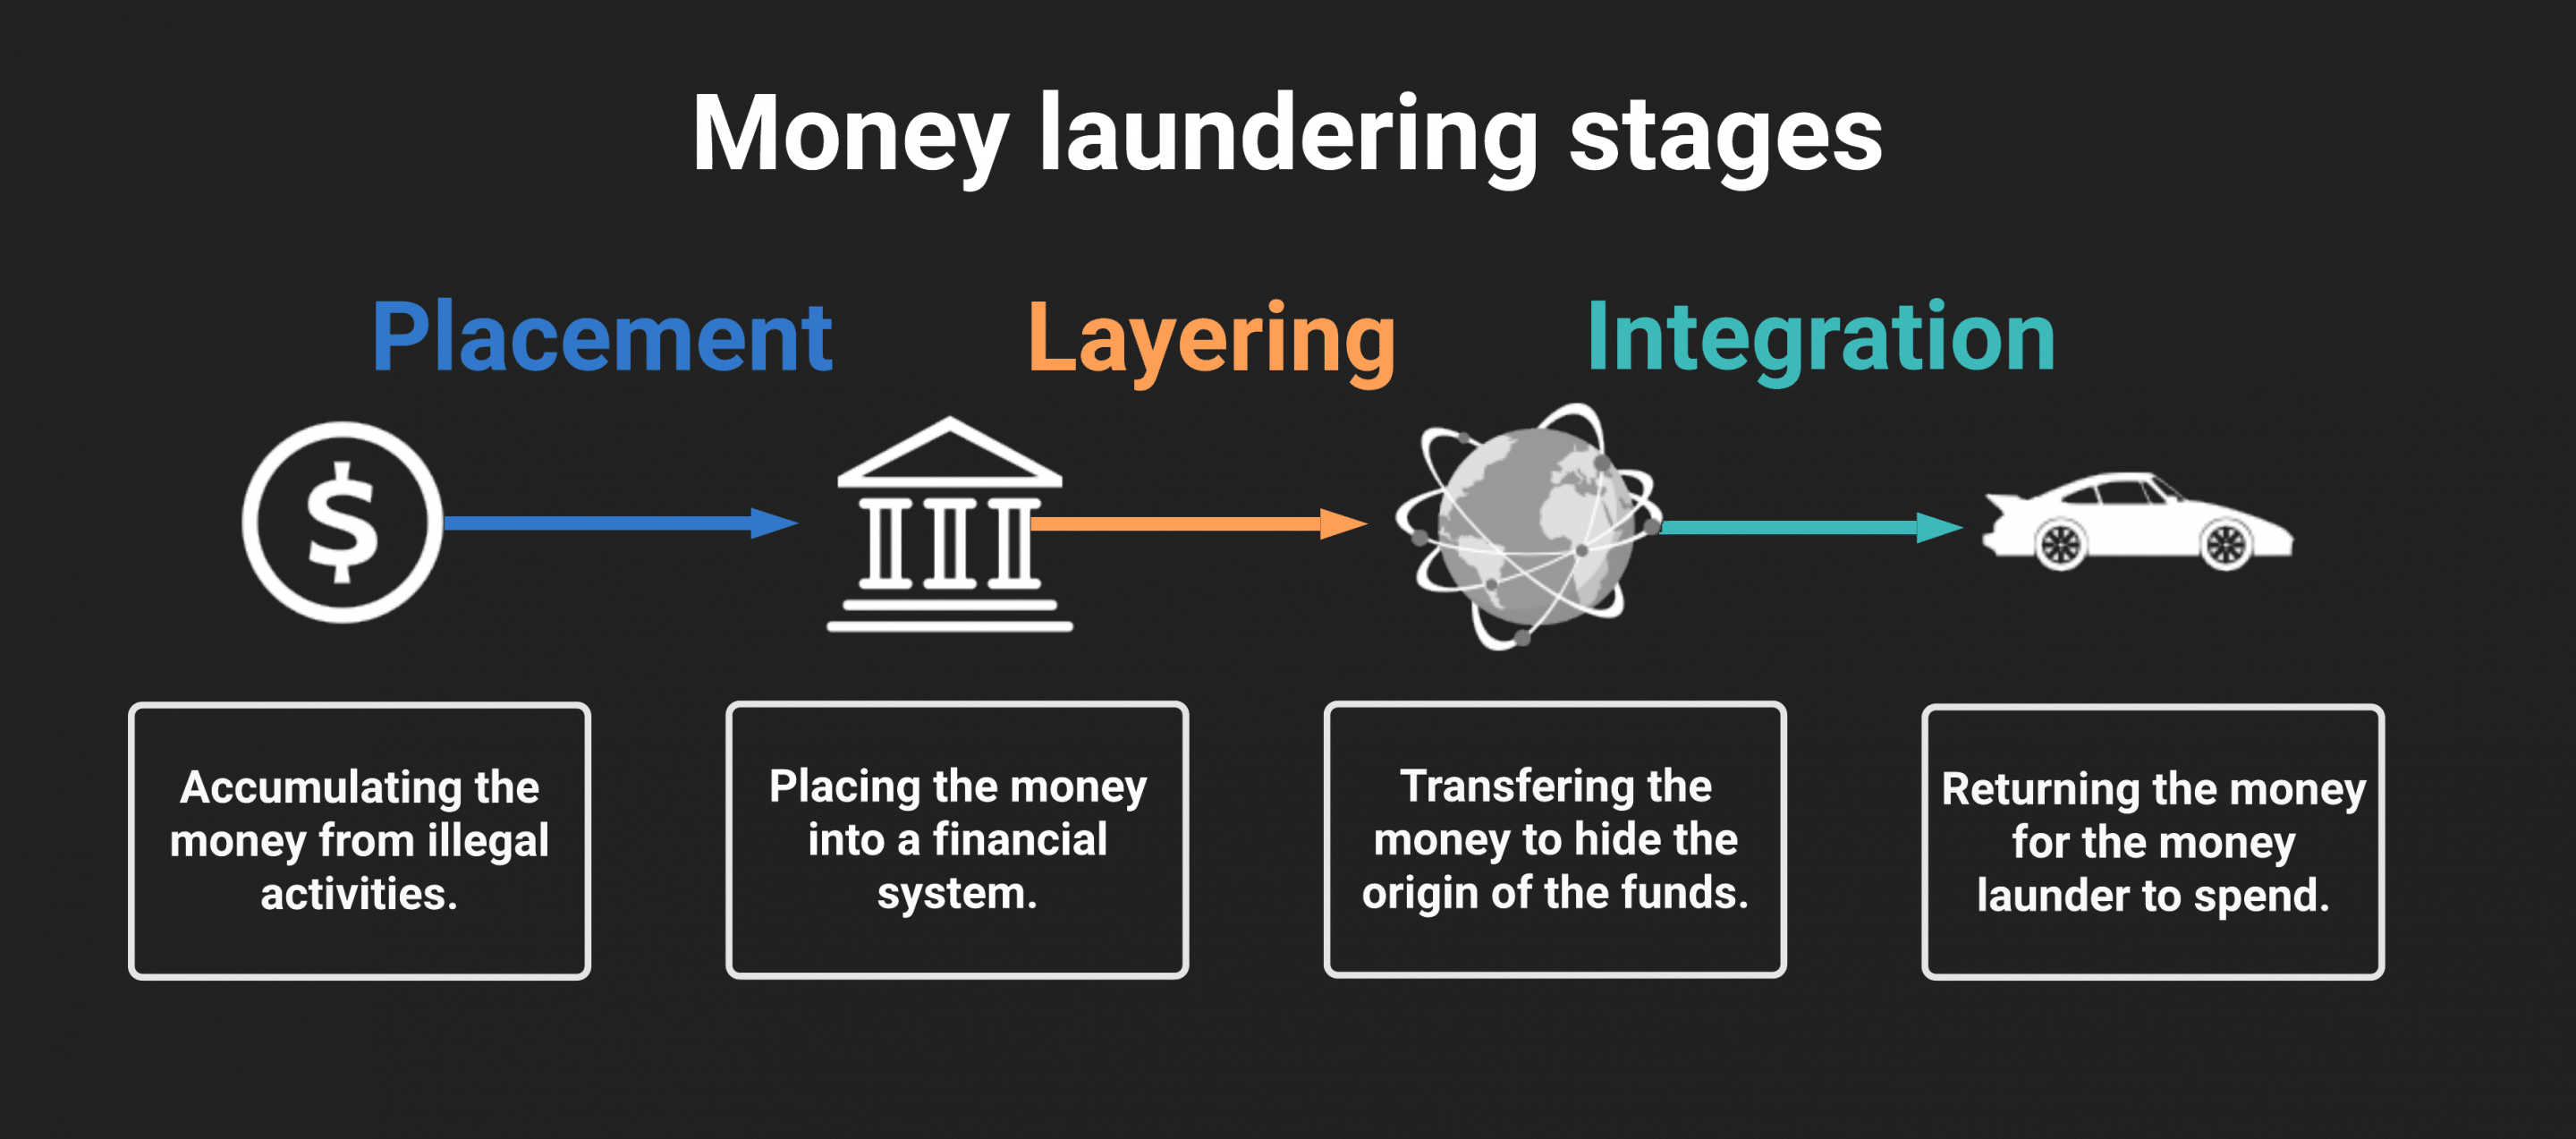 Flowchart outlining the stages of money laundering